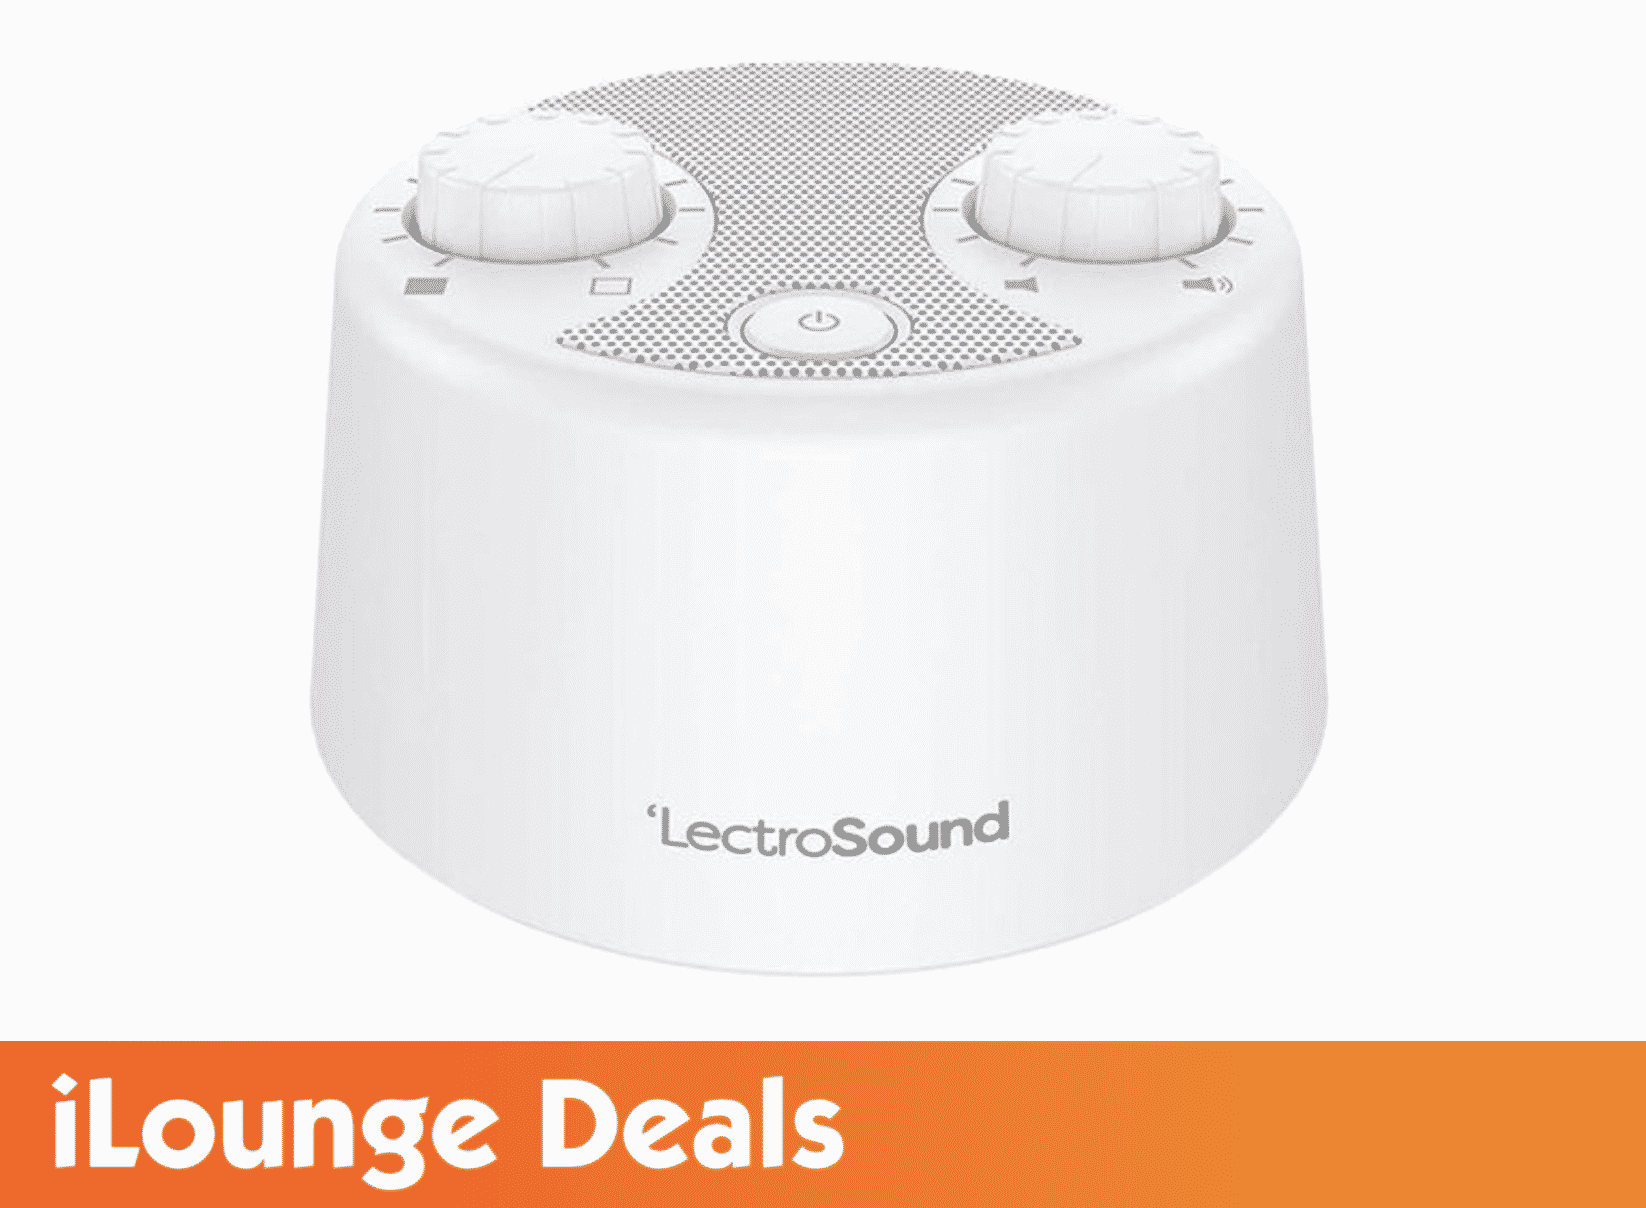 LectroSound Sleep & Relax Soothing Noise Machine